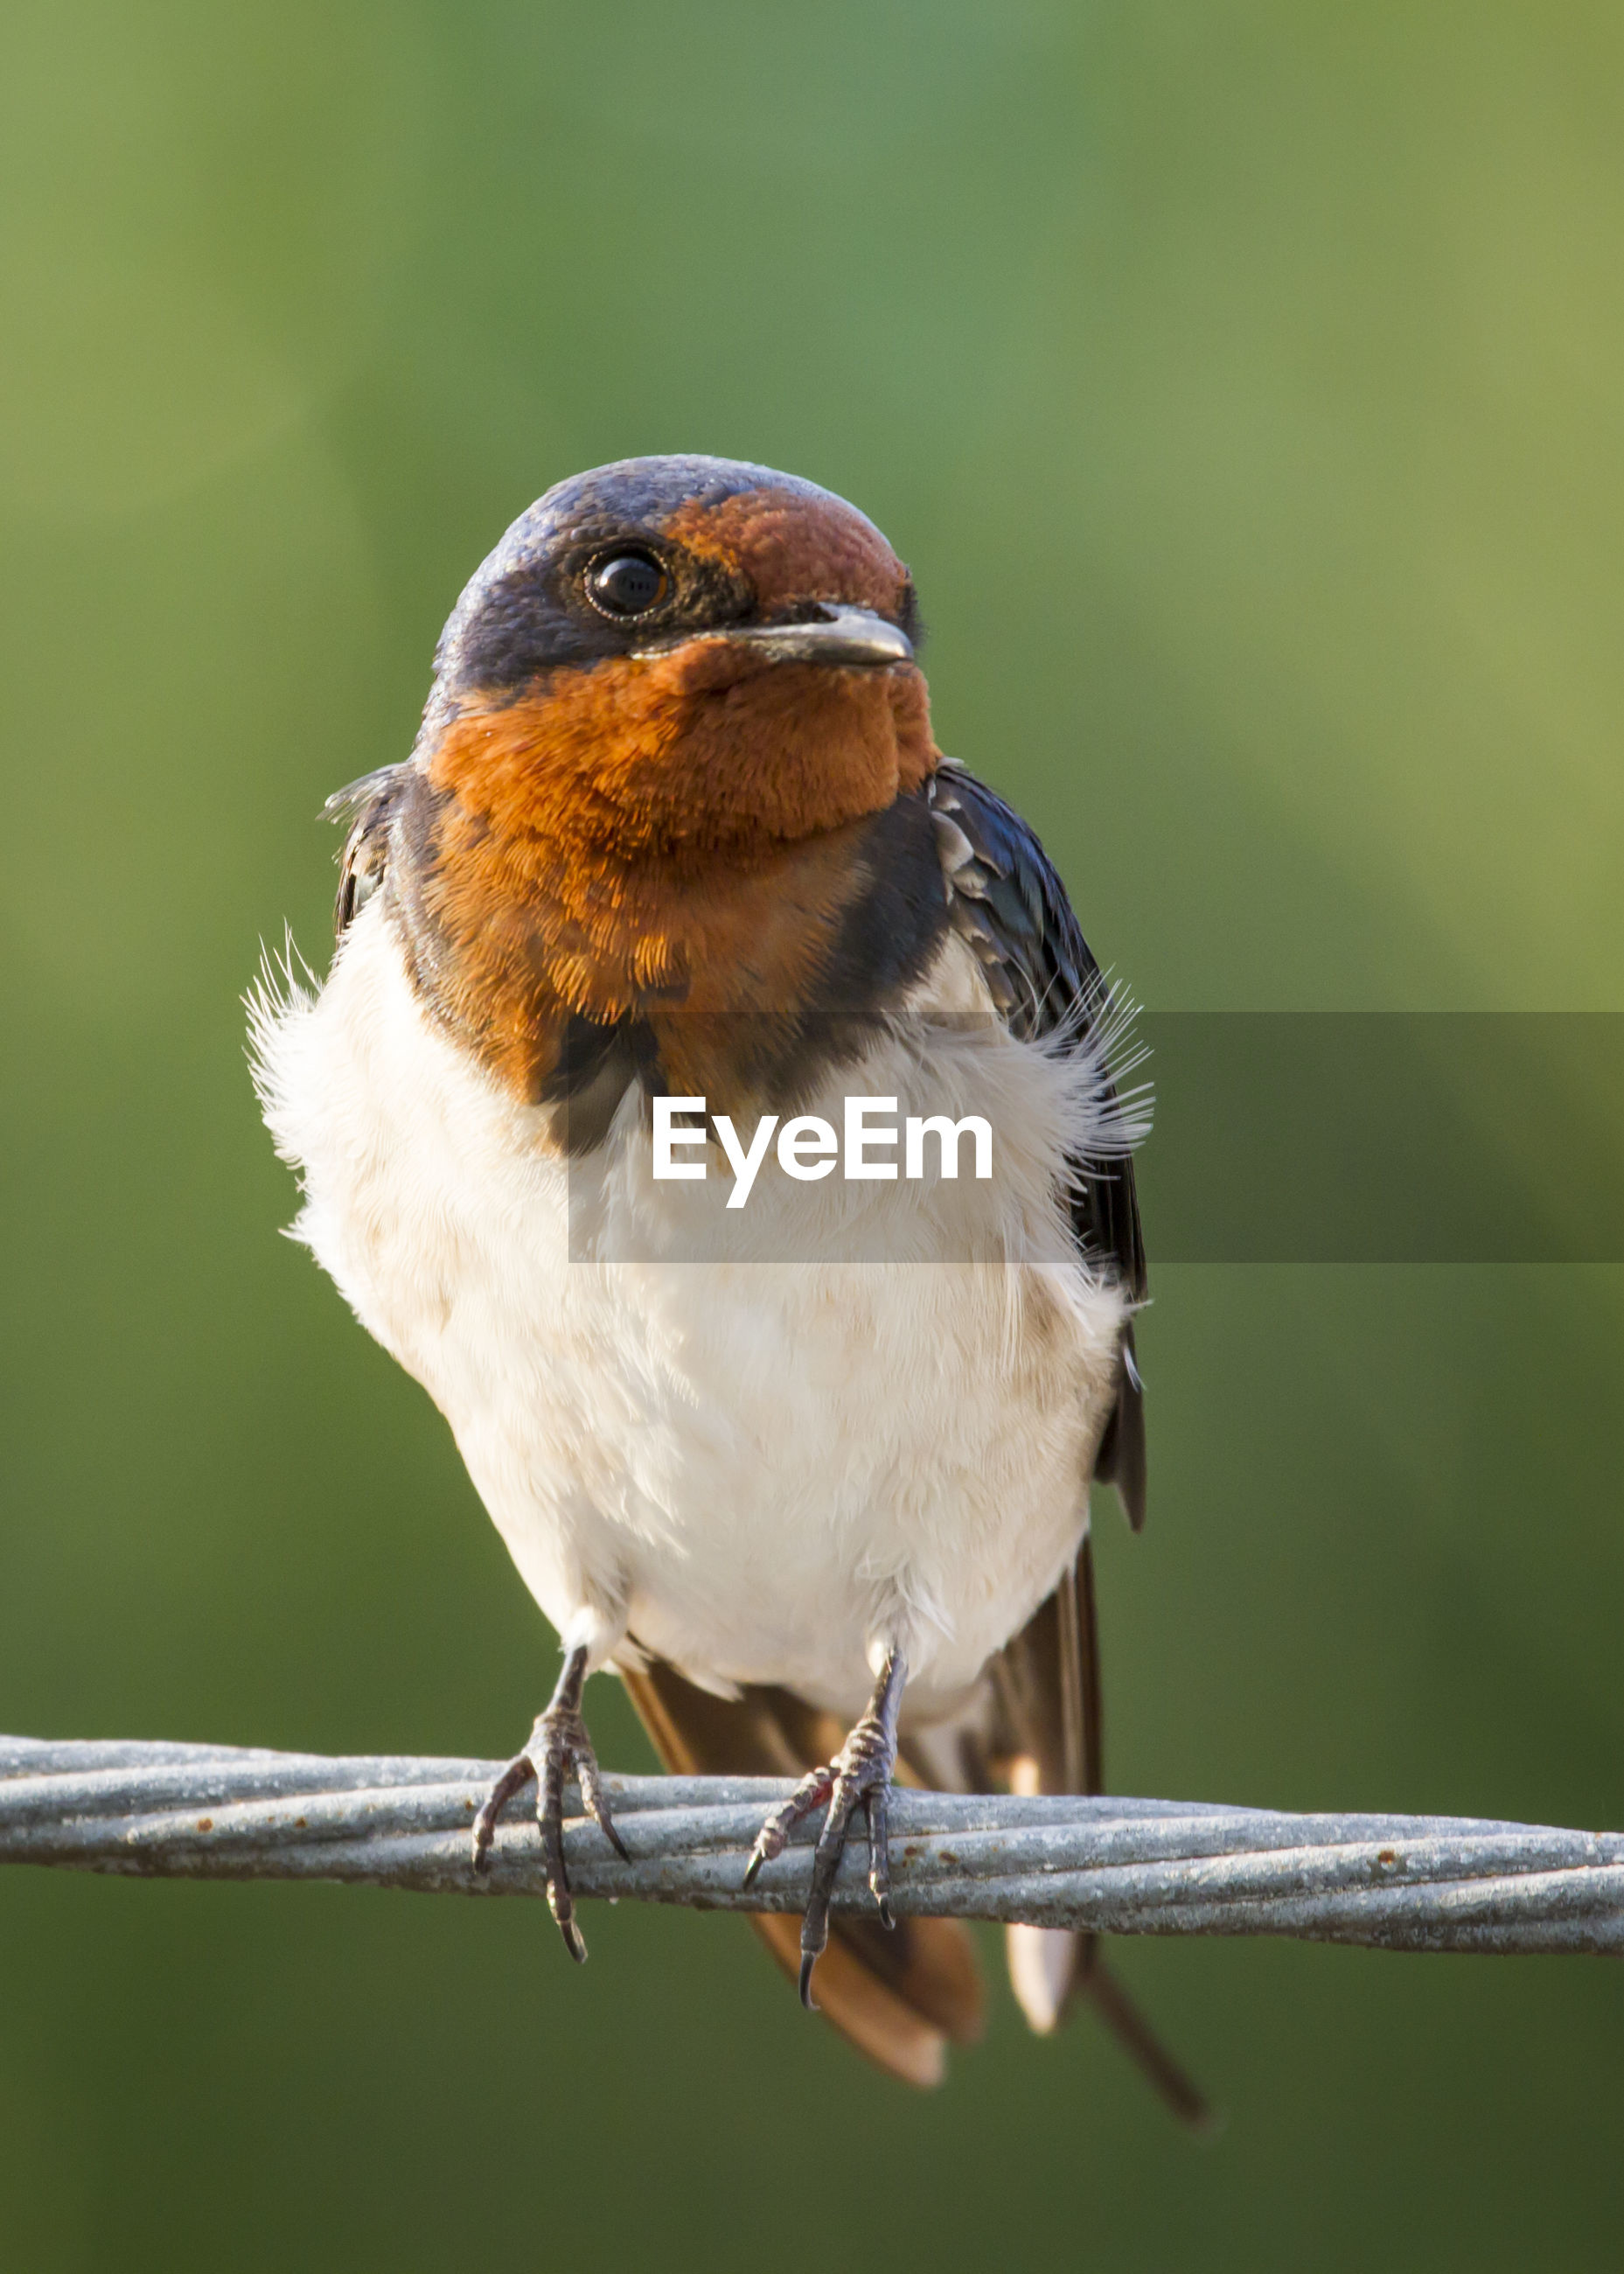 Close-up of bird perching on rope